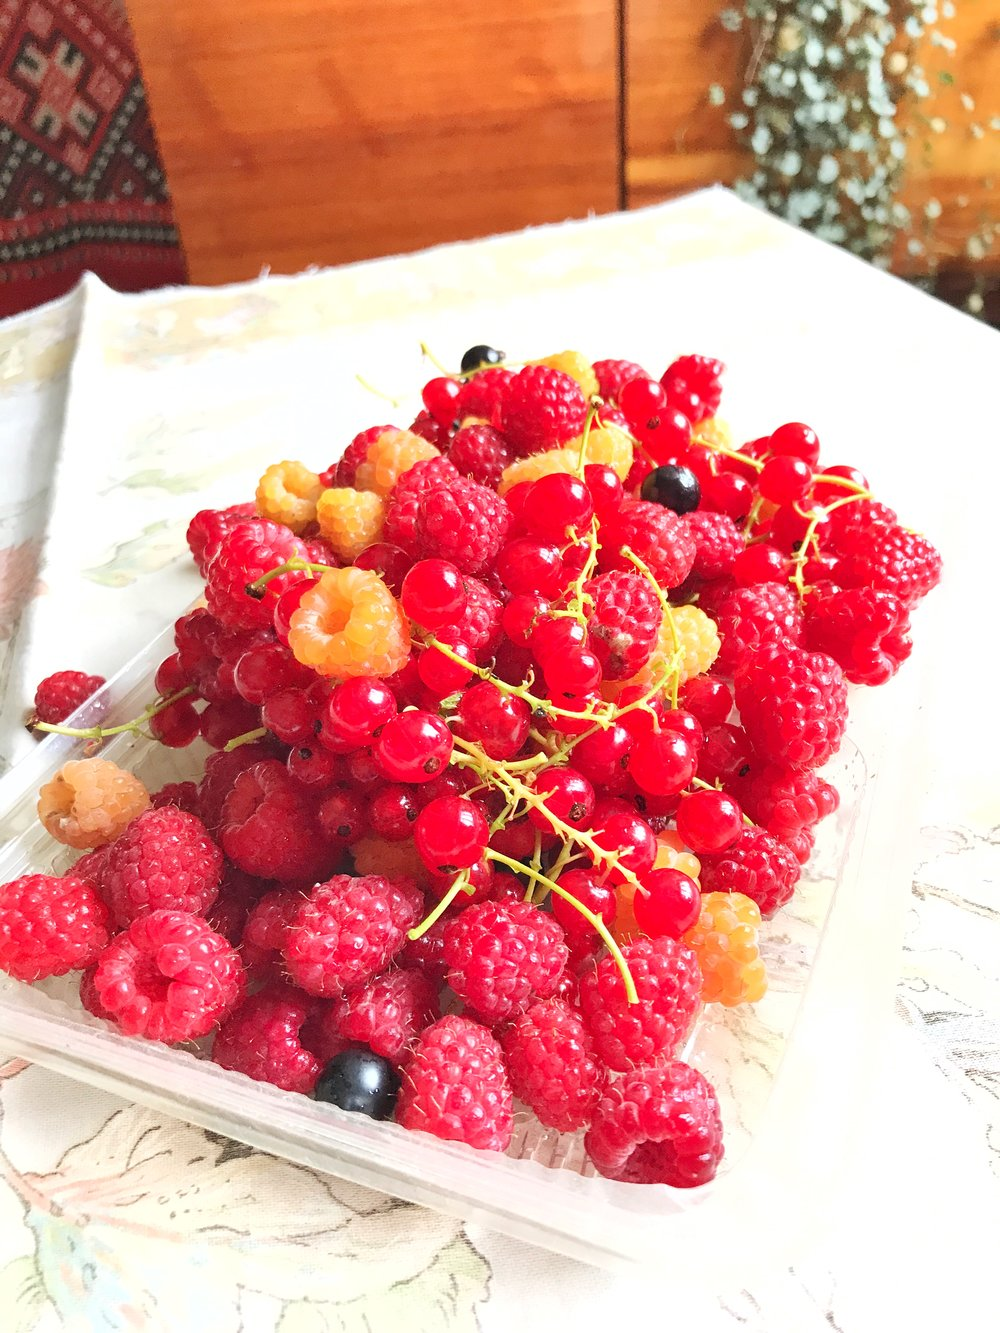 The end of June is raspberry, strawberry, and currant season.....we received many of these beauties from our beloved friends.